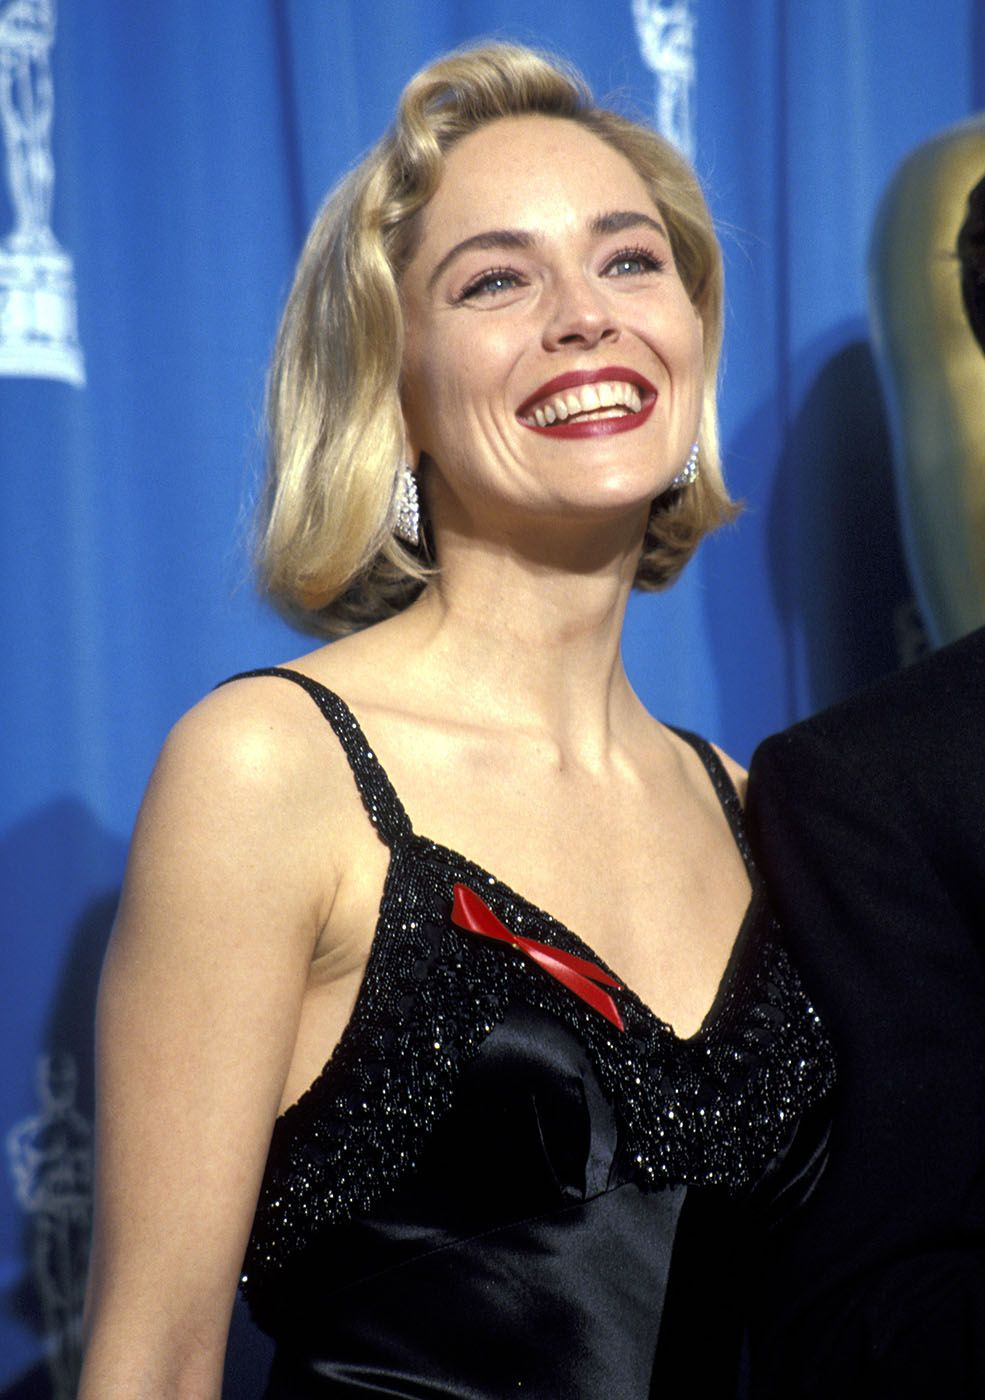 Sharon stone spiky short haircut for older women over 50 getty images - Sharon Stone Beautiful Bob